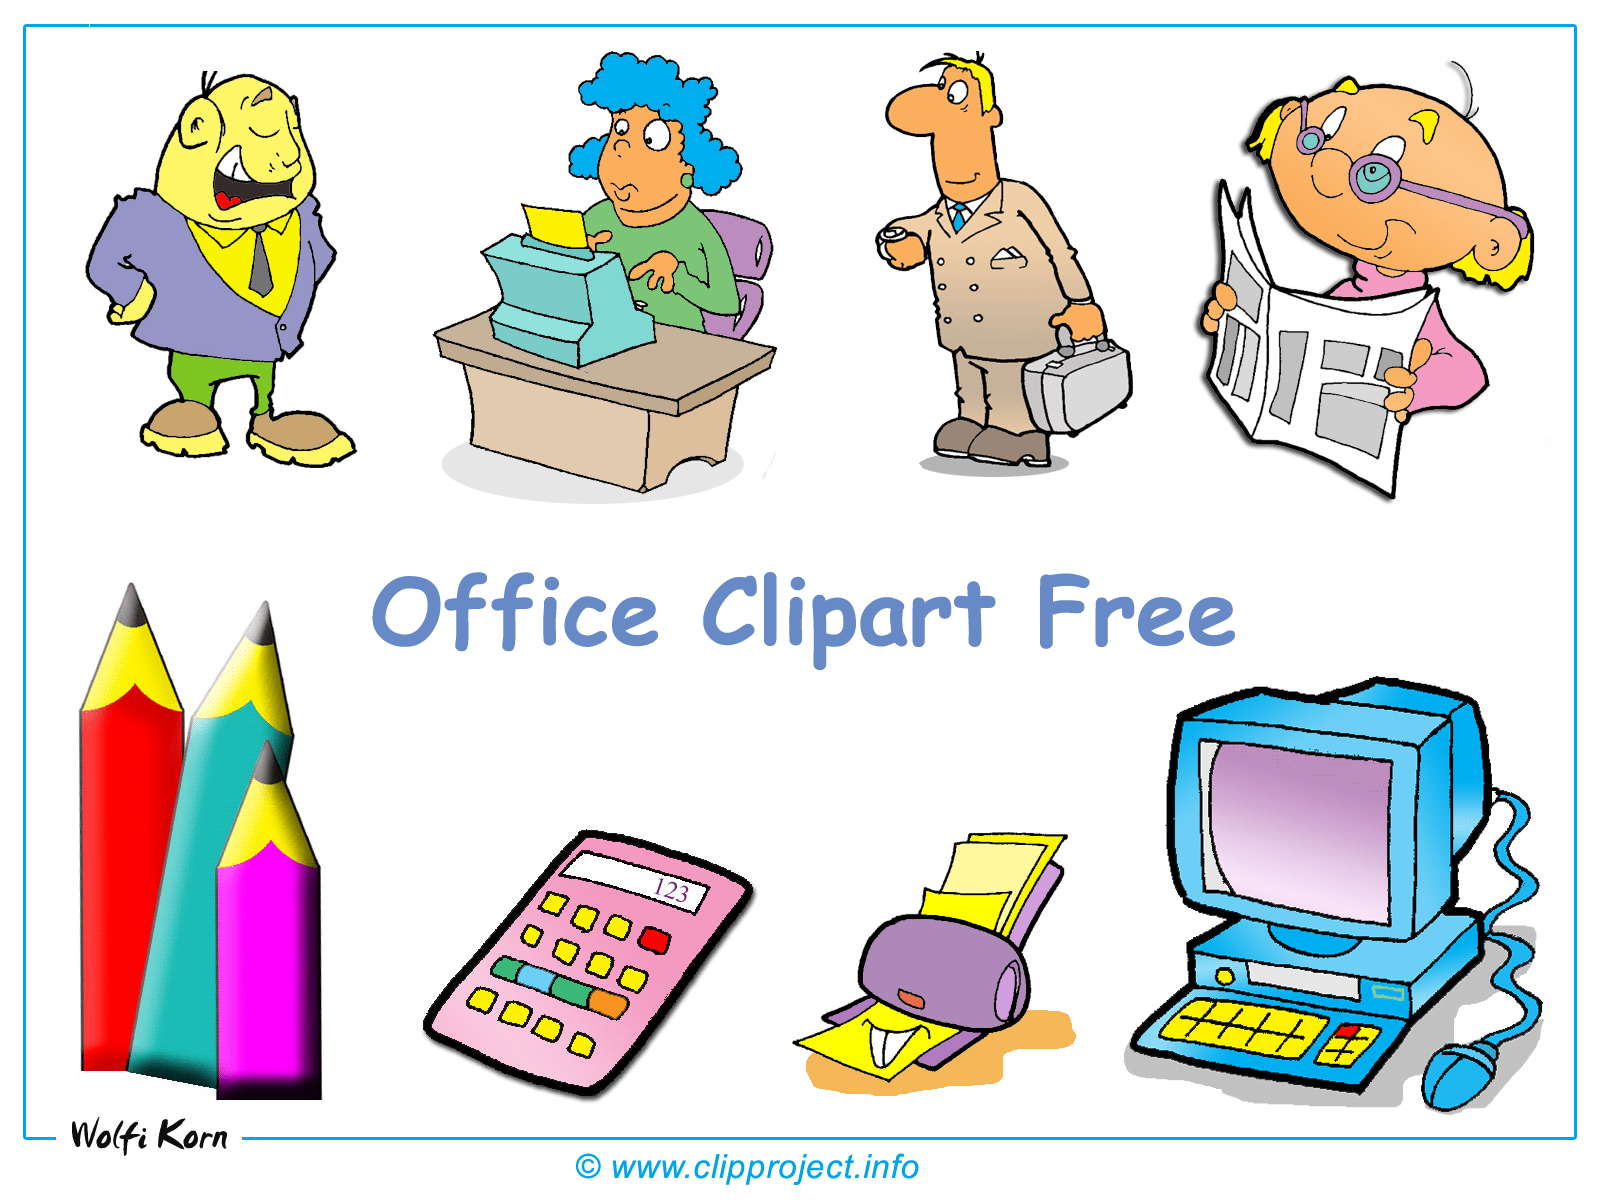 Free Office Cliparts, Download Free Clip Art, Free Clip Art.